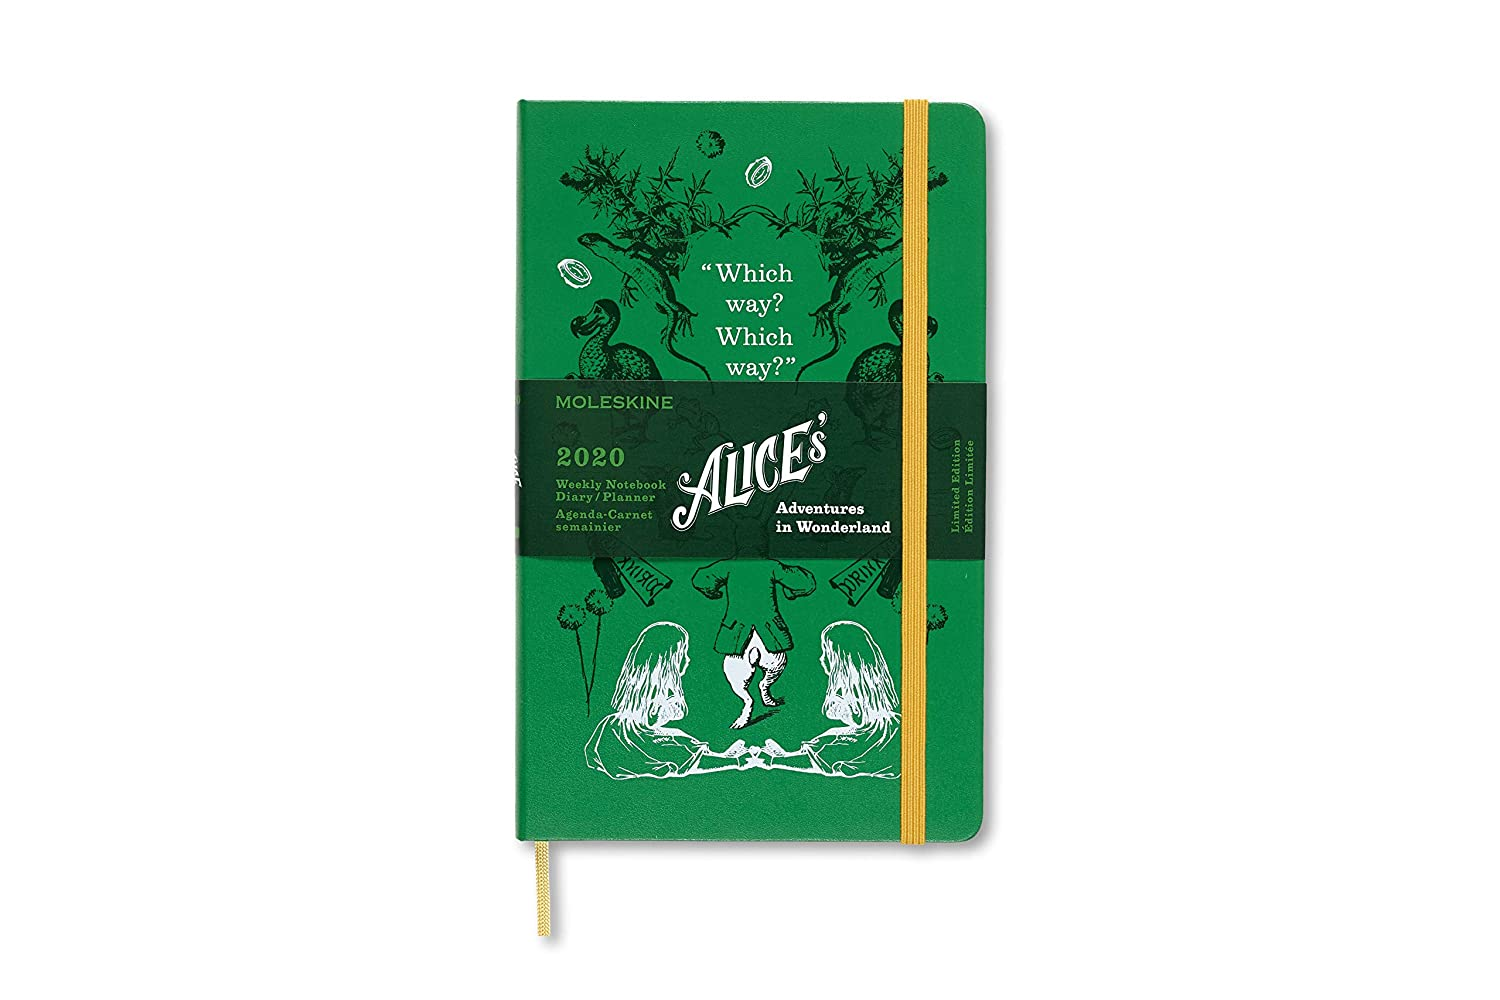 Moleskine Limited Edition Alice in Wonderland 12 Month 2020 Weekly Planner, Hard Cover, Large (5